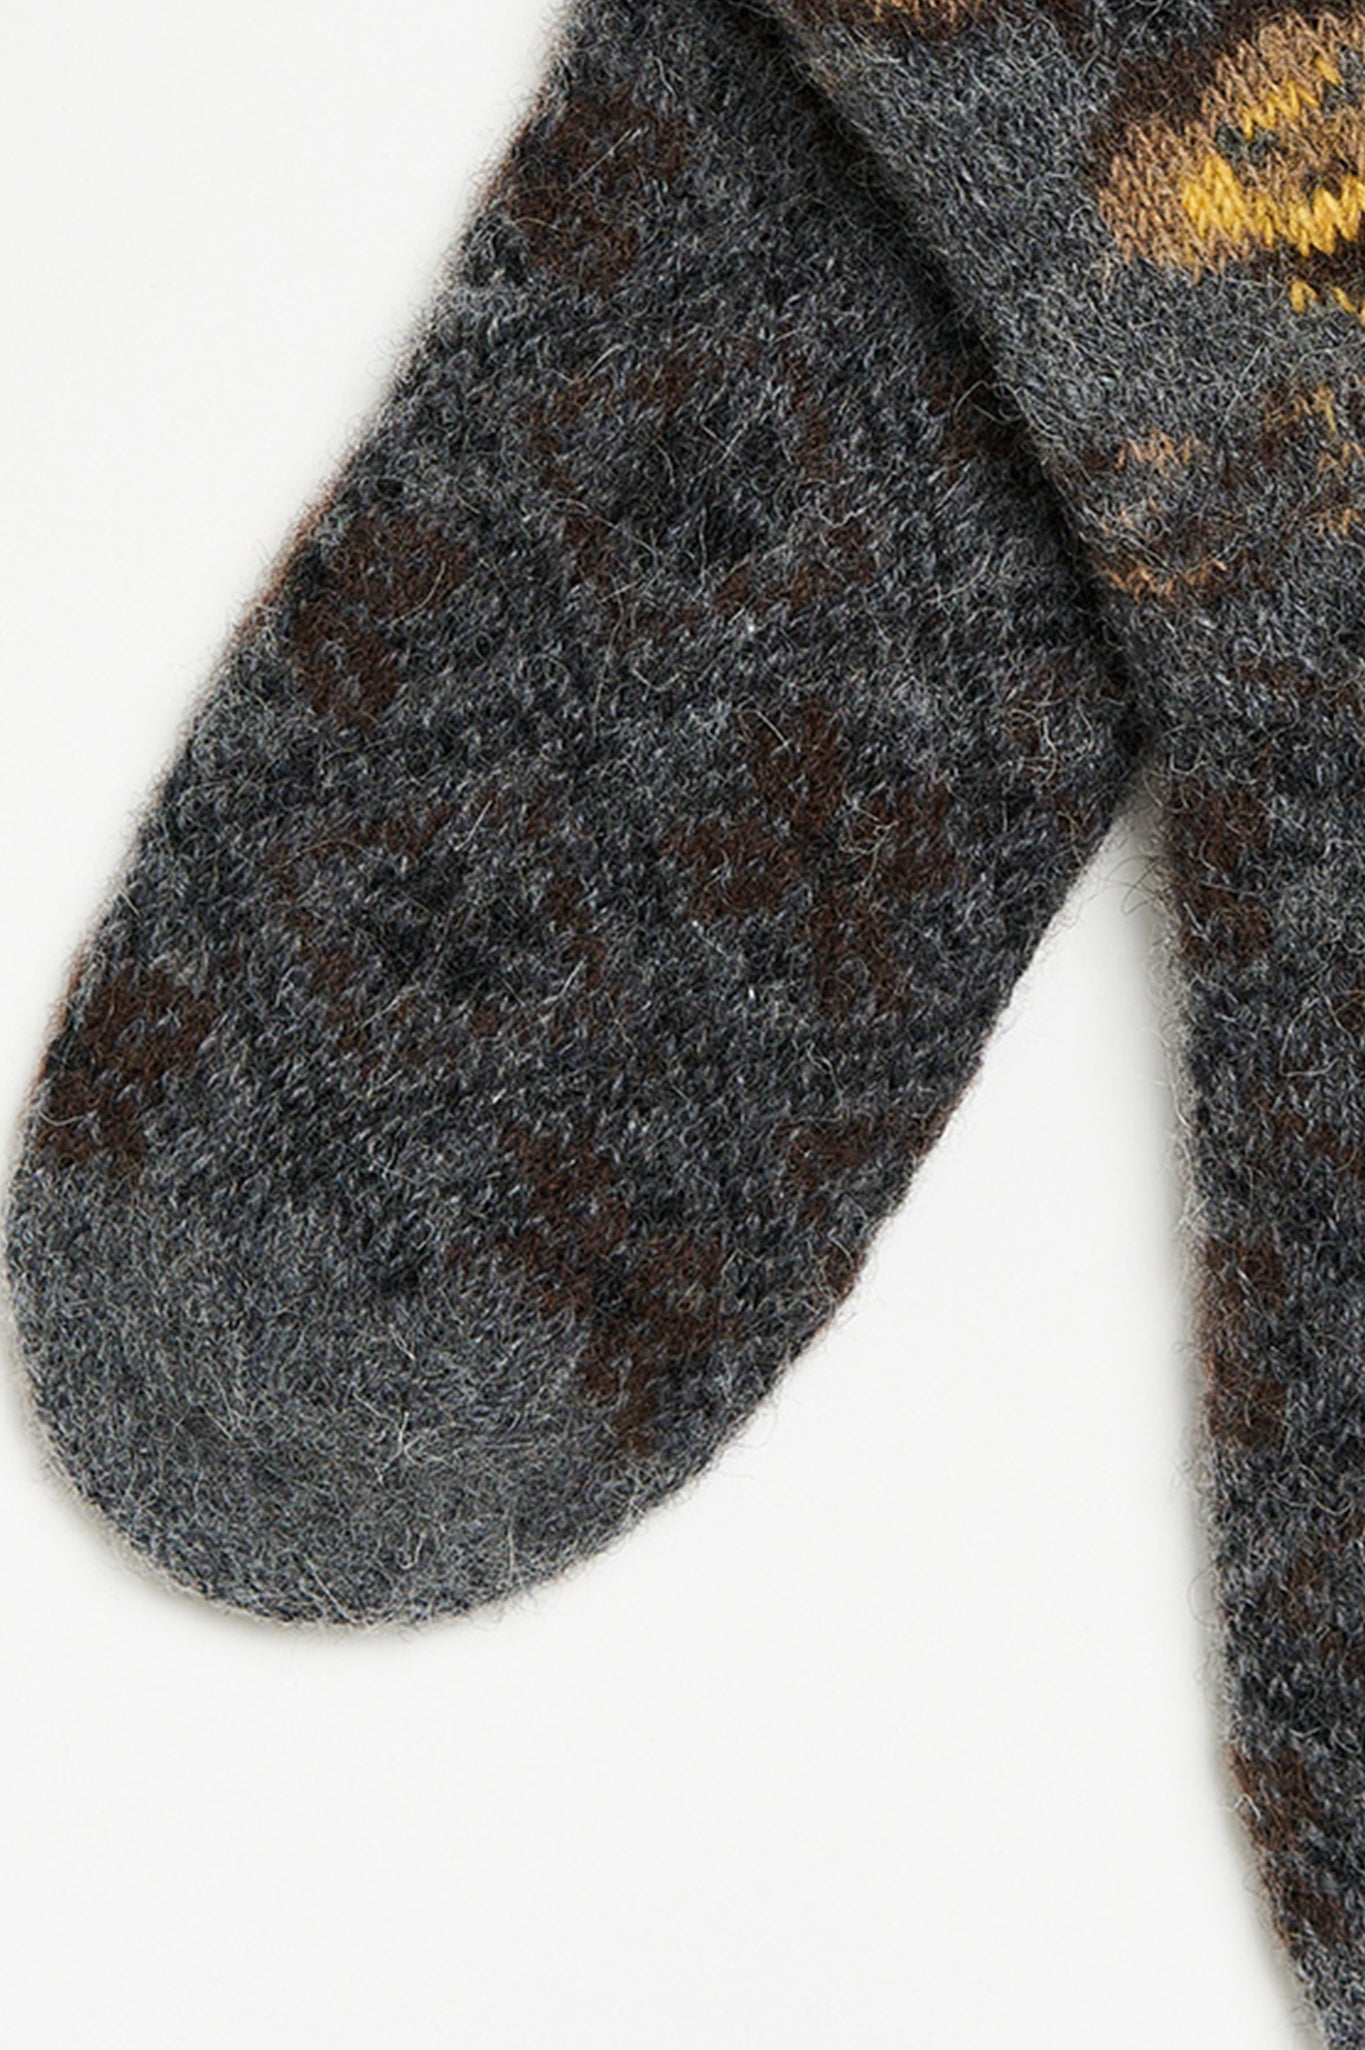 Bulls wool socks